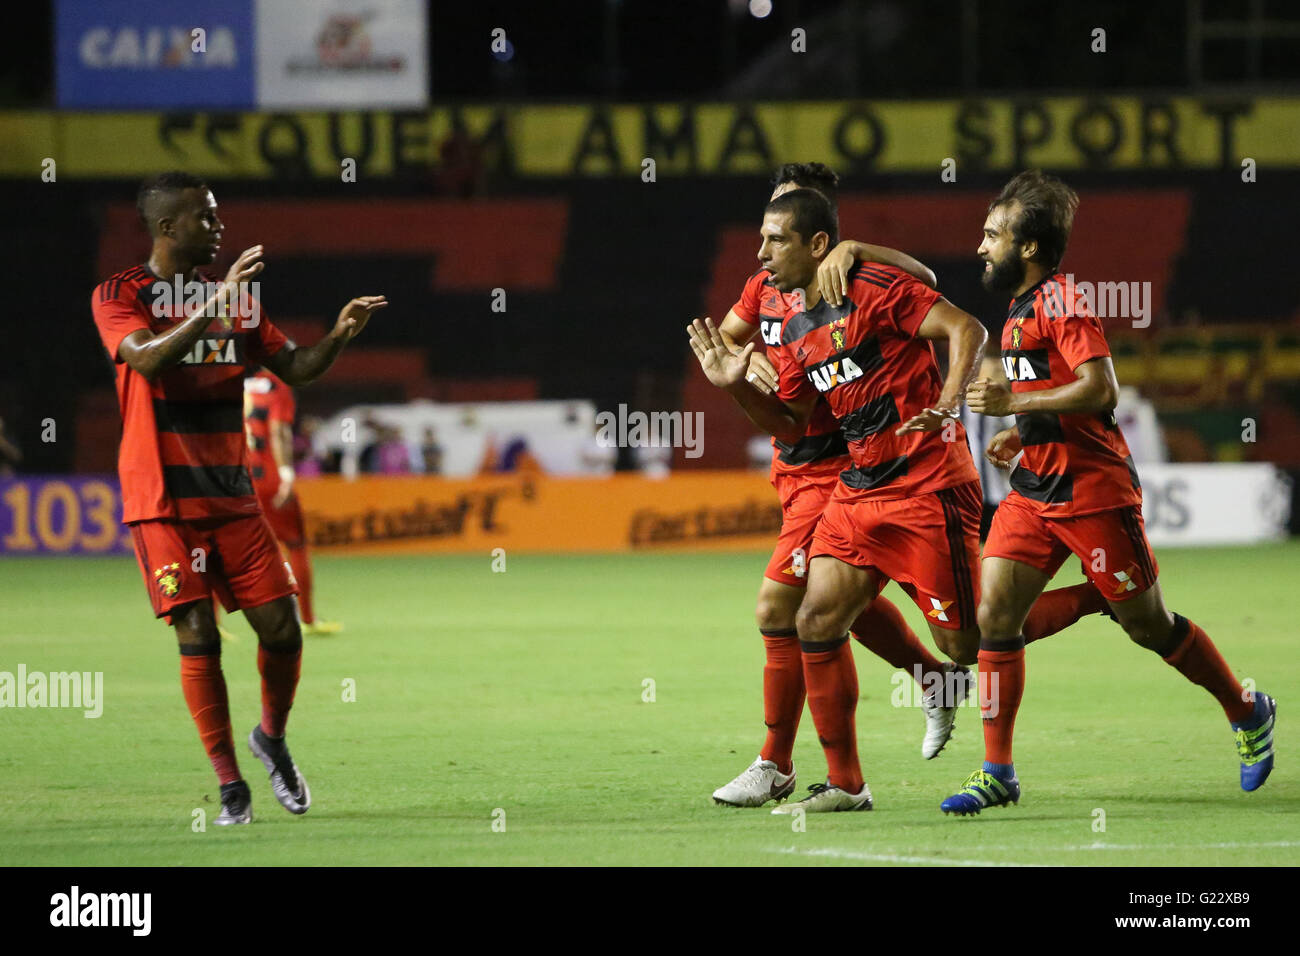 Recife Pe 22 05 2016 Sport X Botafogo Diego Souza Opens The Stock Photo Alamy